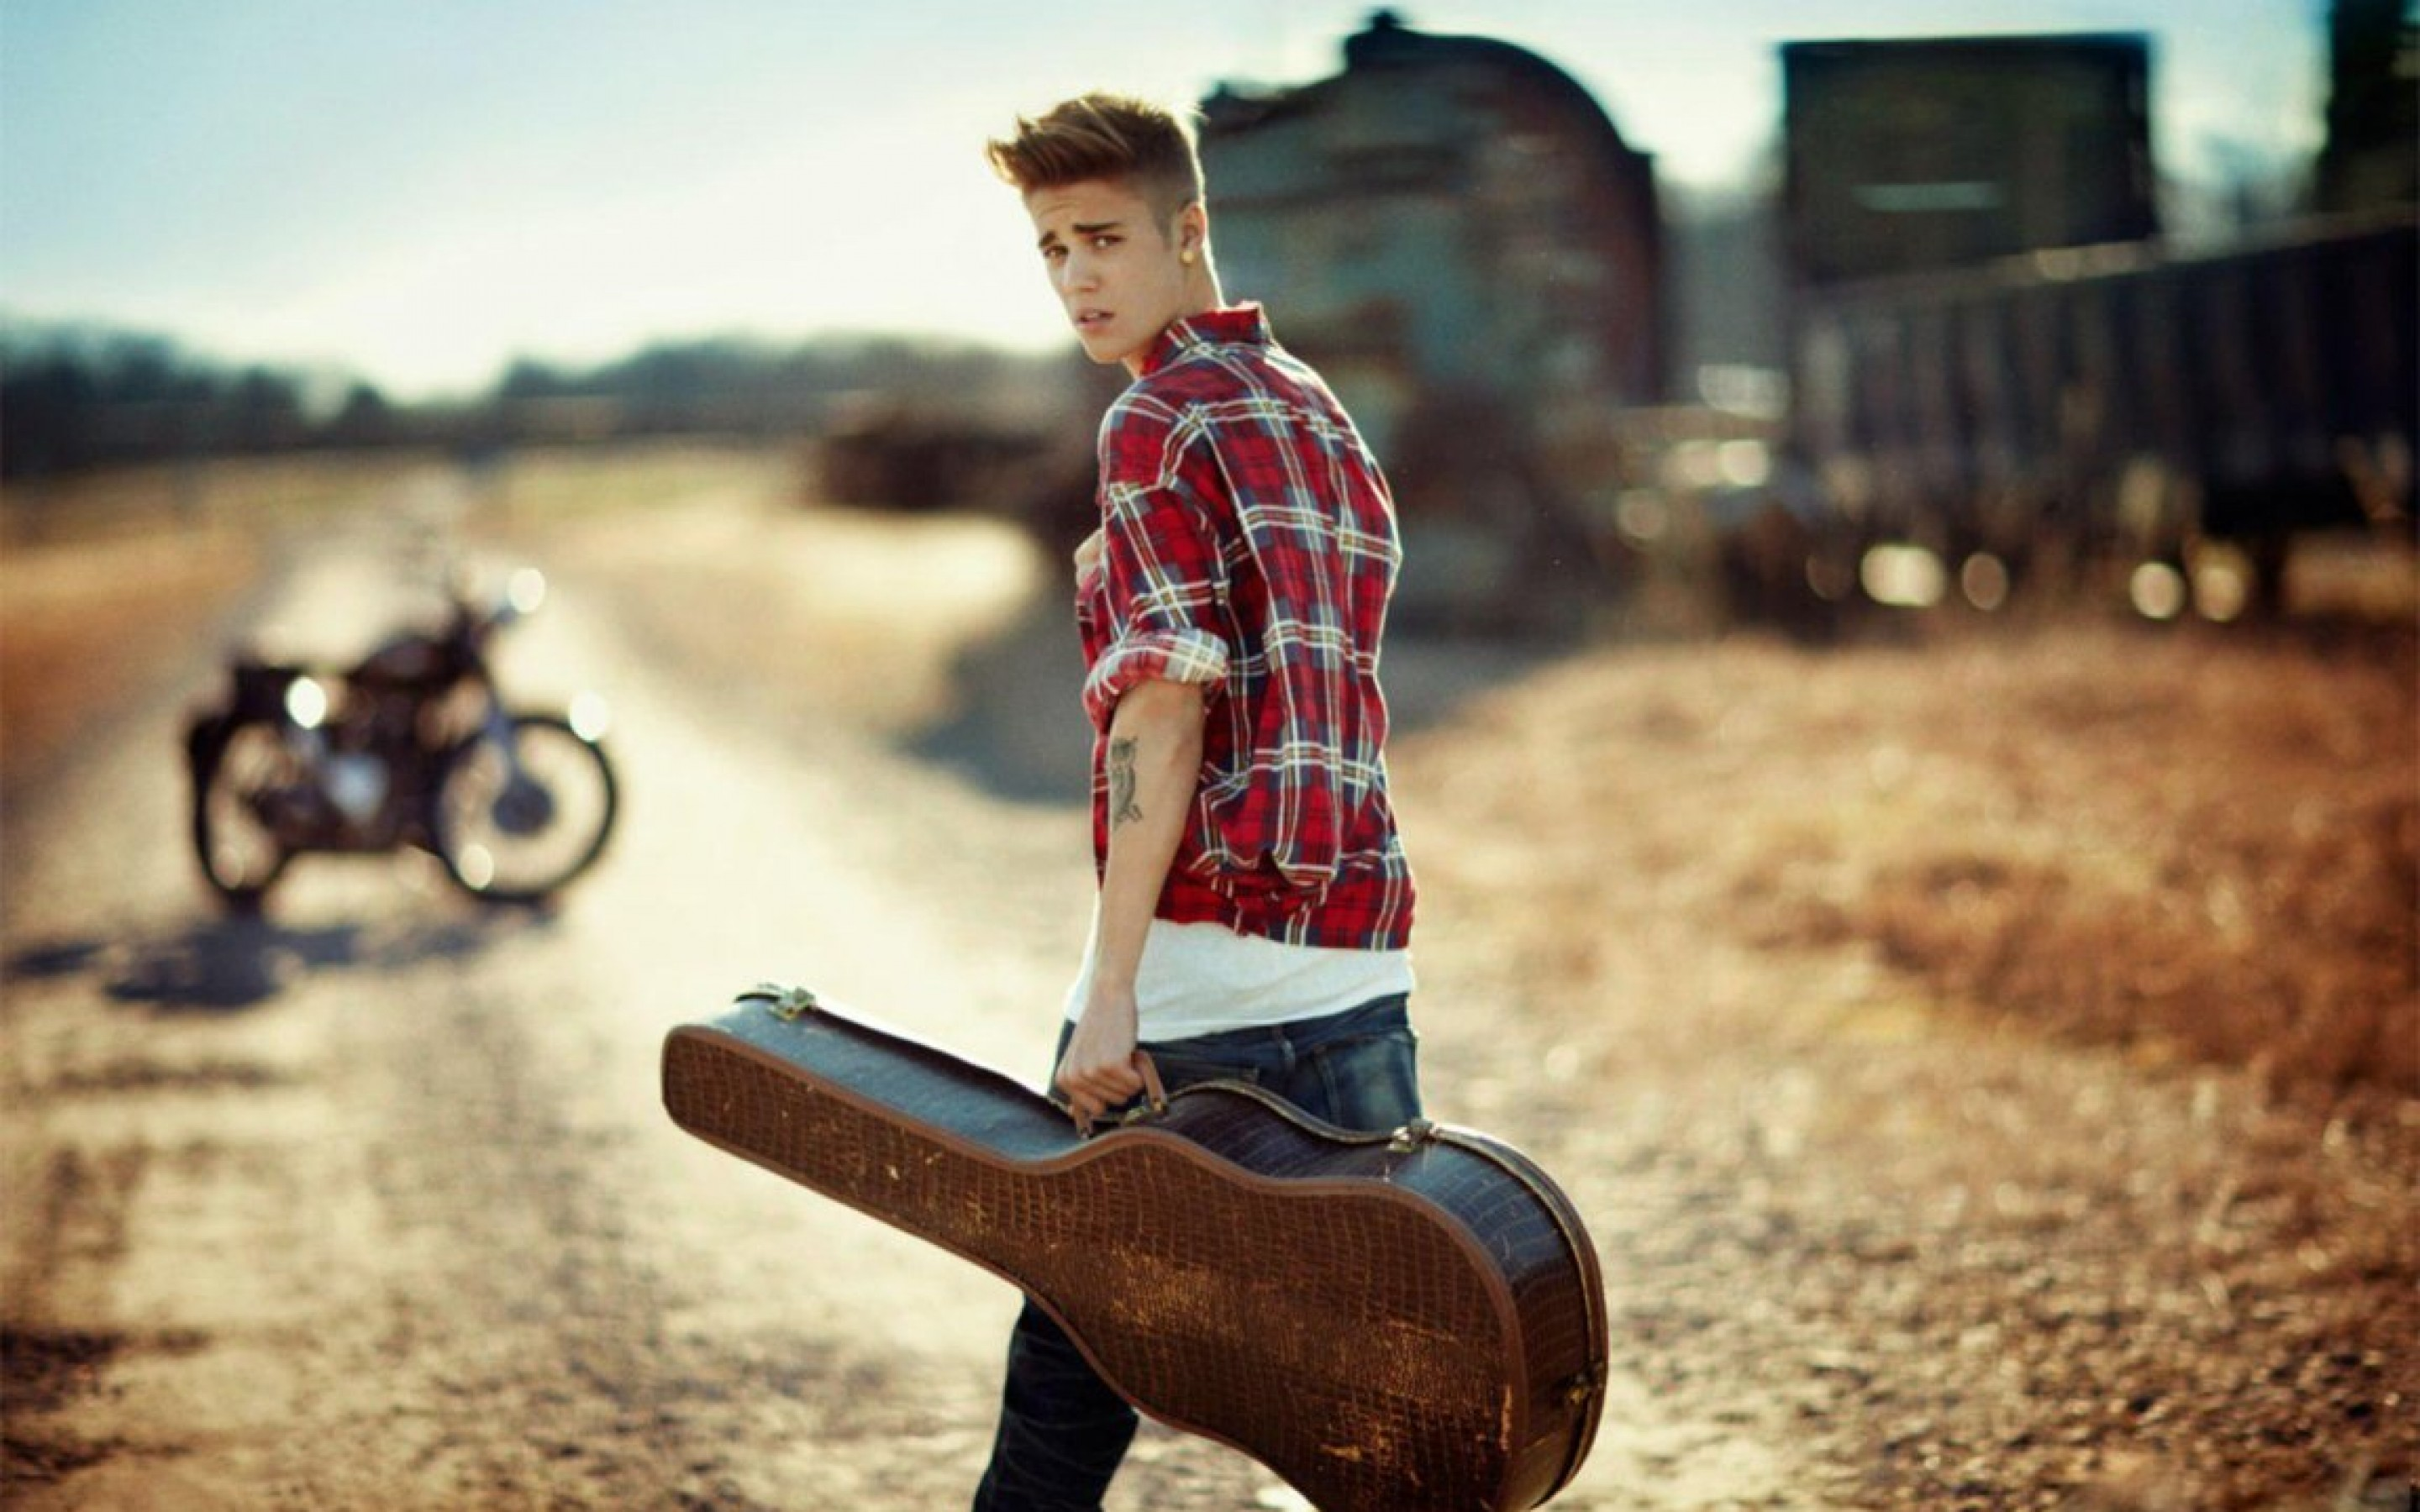 2015 By Stephen Comments Off on Justin Bieber 2015 Wallpapers 2880x1800